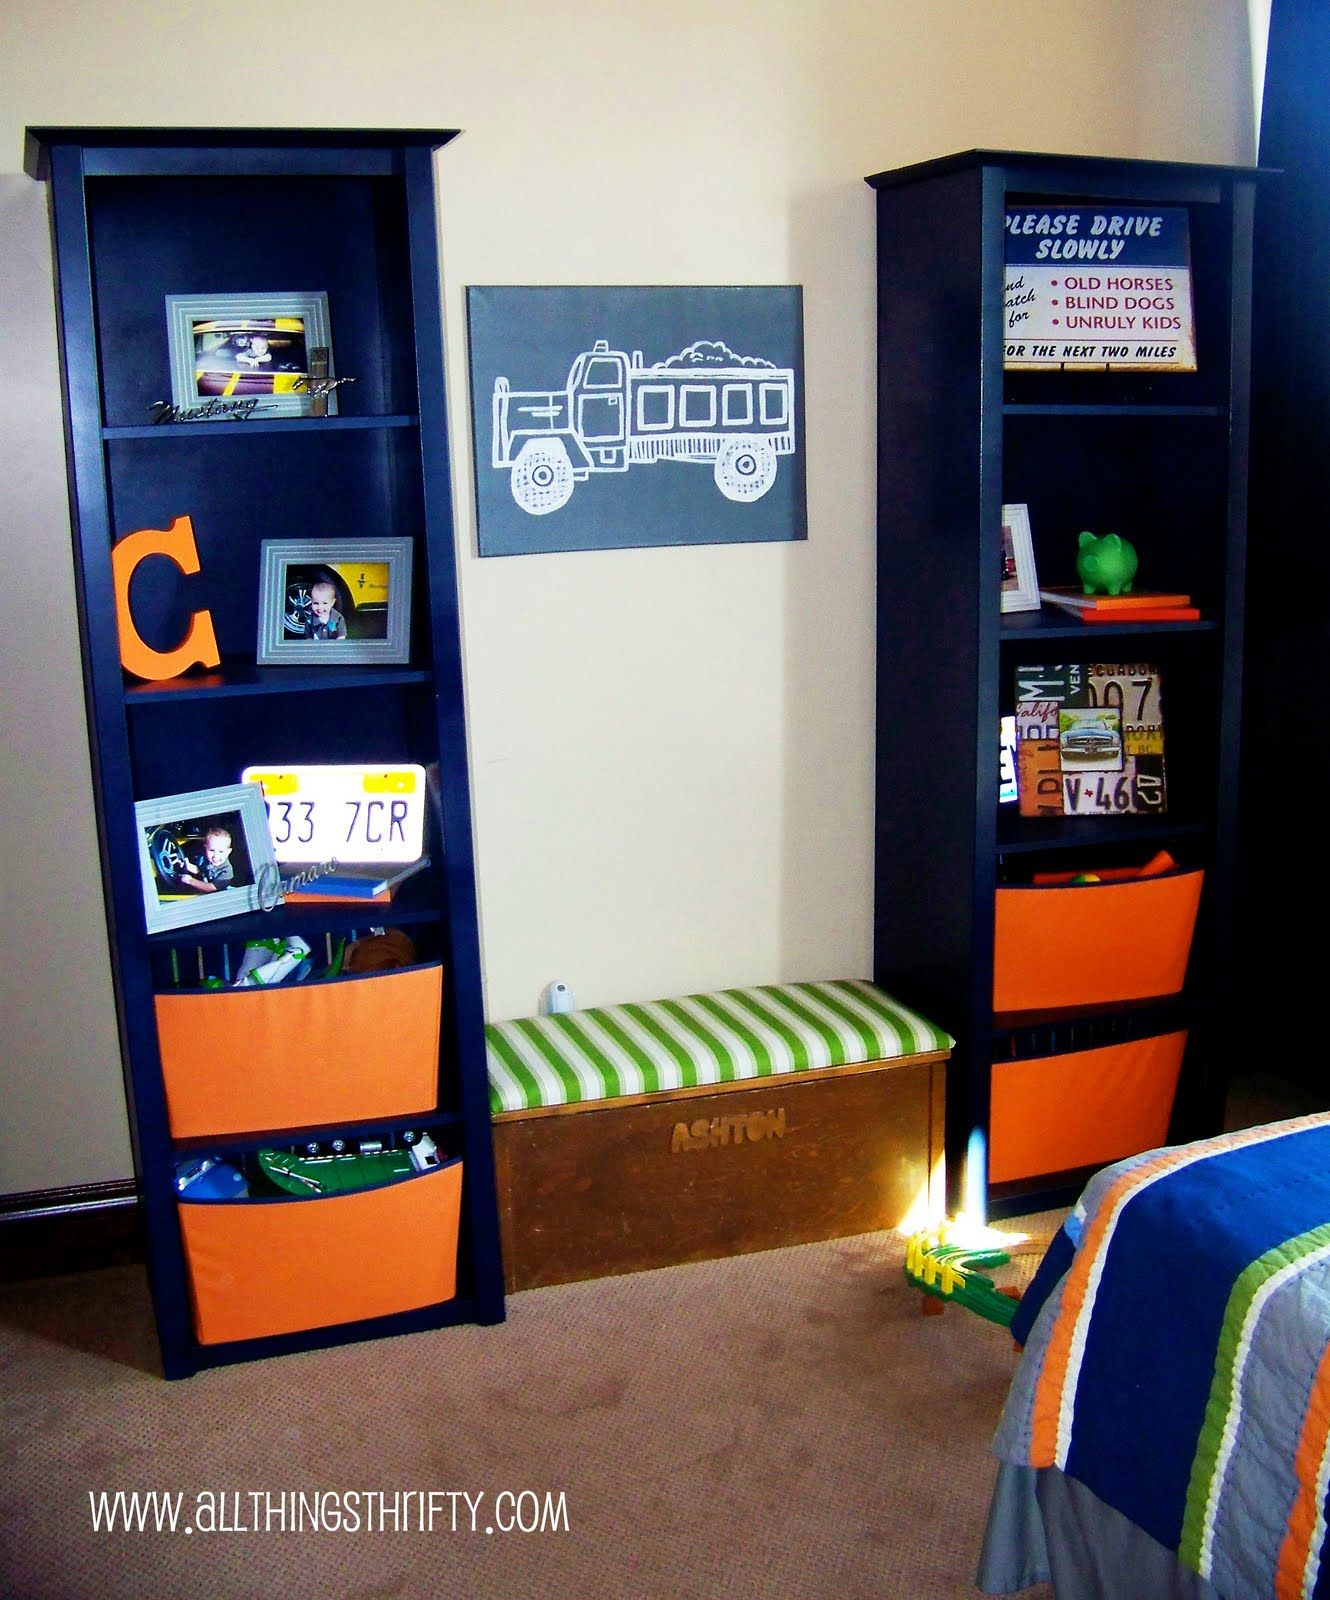 Boys bedroom ideas for small rooms - Lego Teenage Boy Bedroom Decorating Ideas Little Boy S Room Bedroom Decor